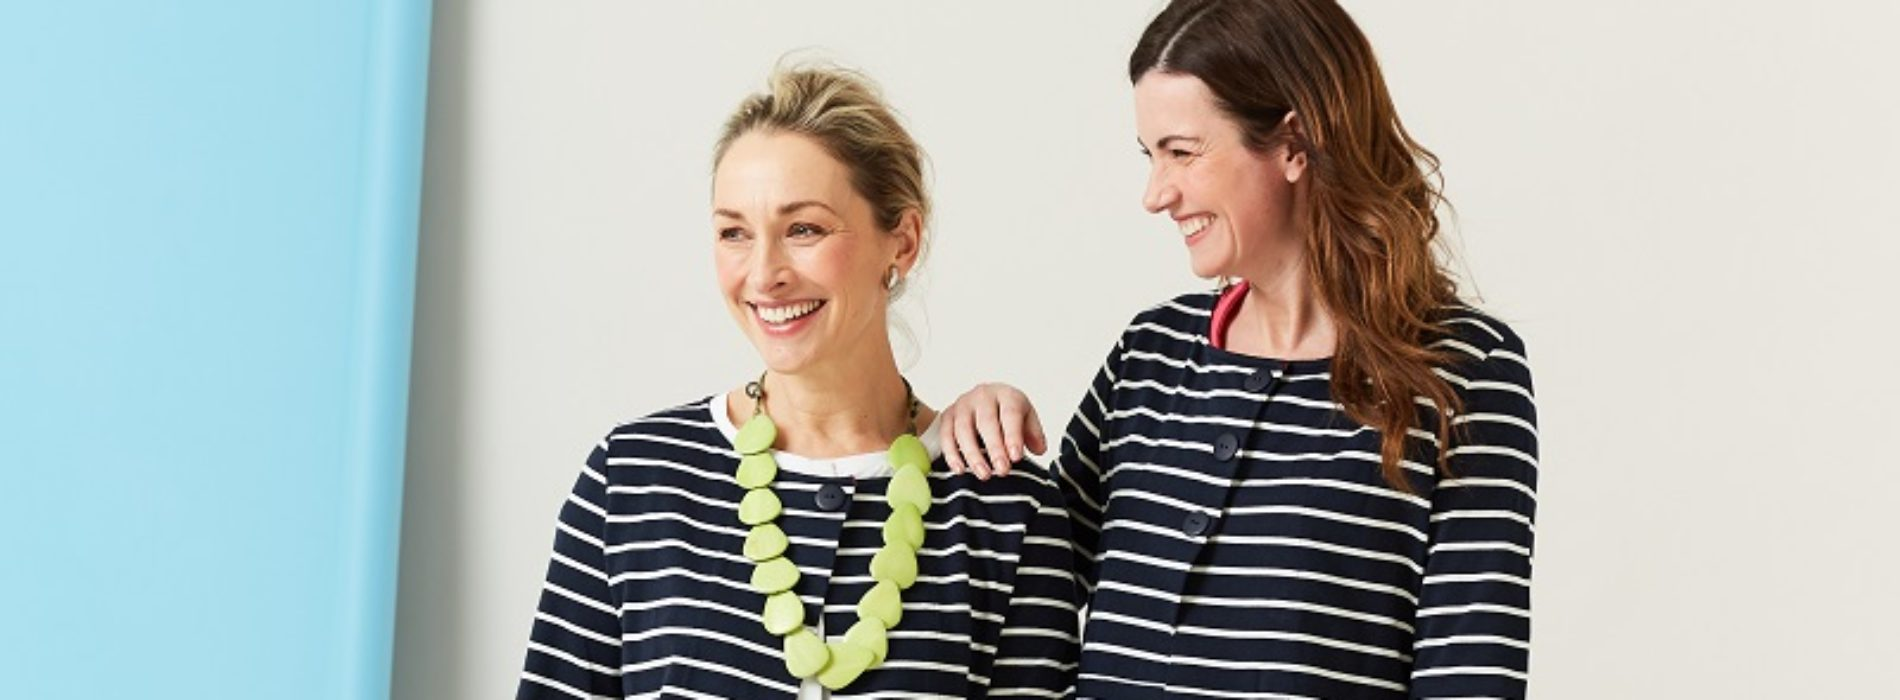 The Able Label: get 10% off practical and stylish adaptive clothing for disabled women